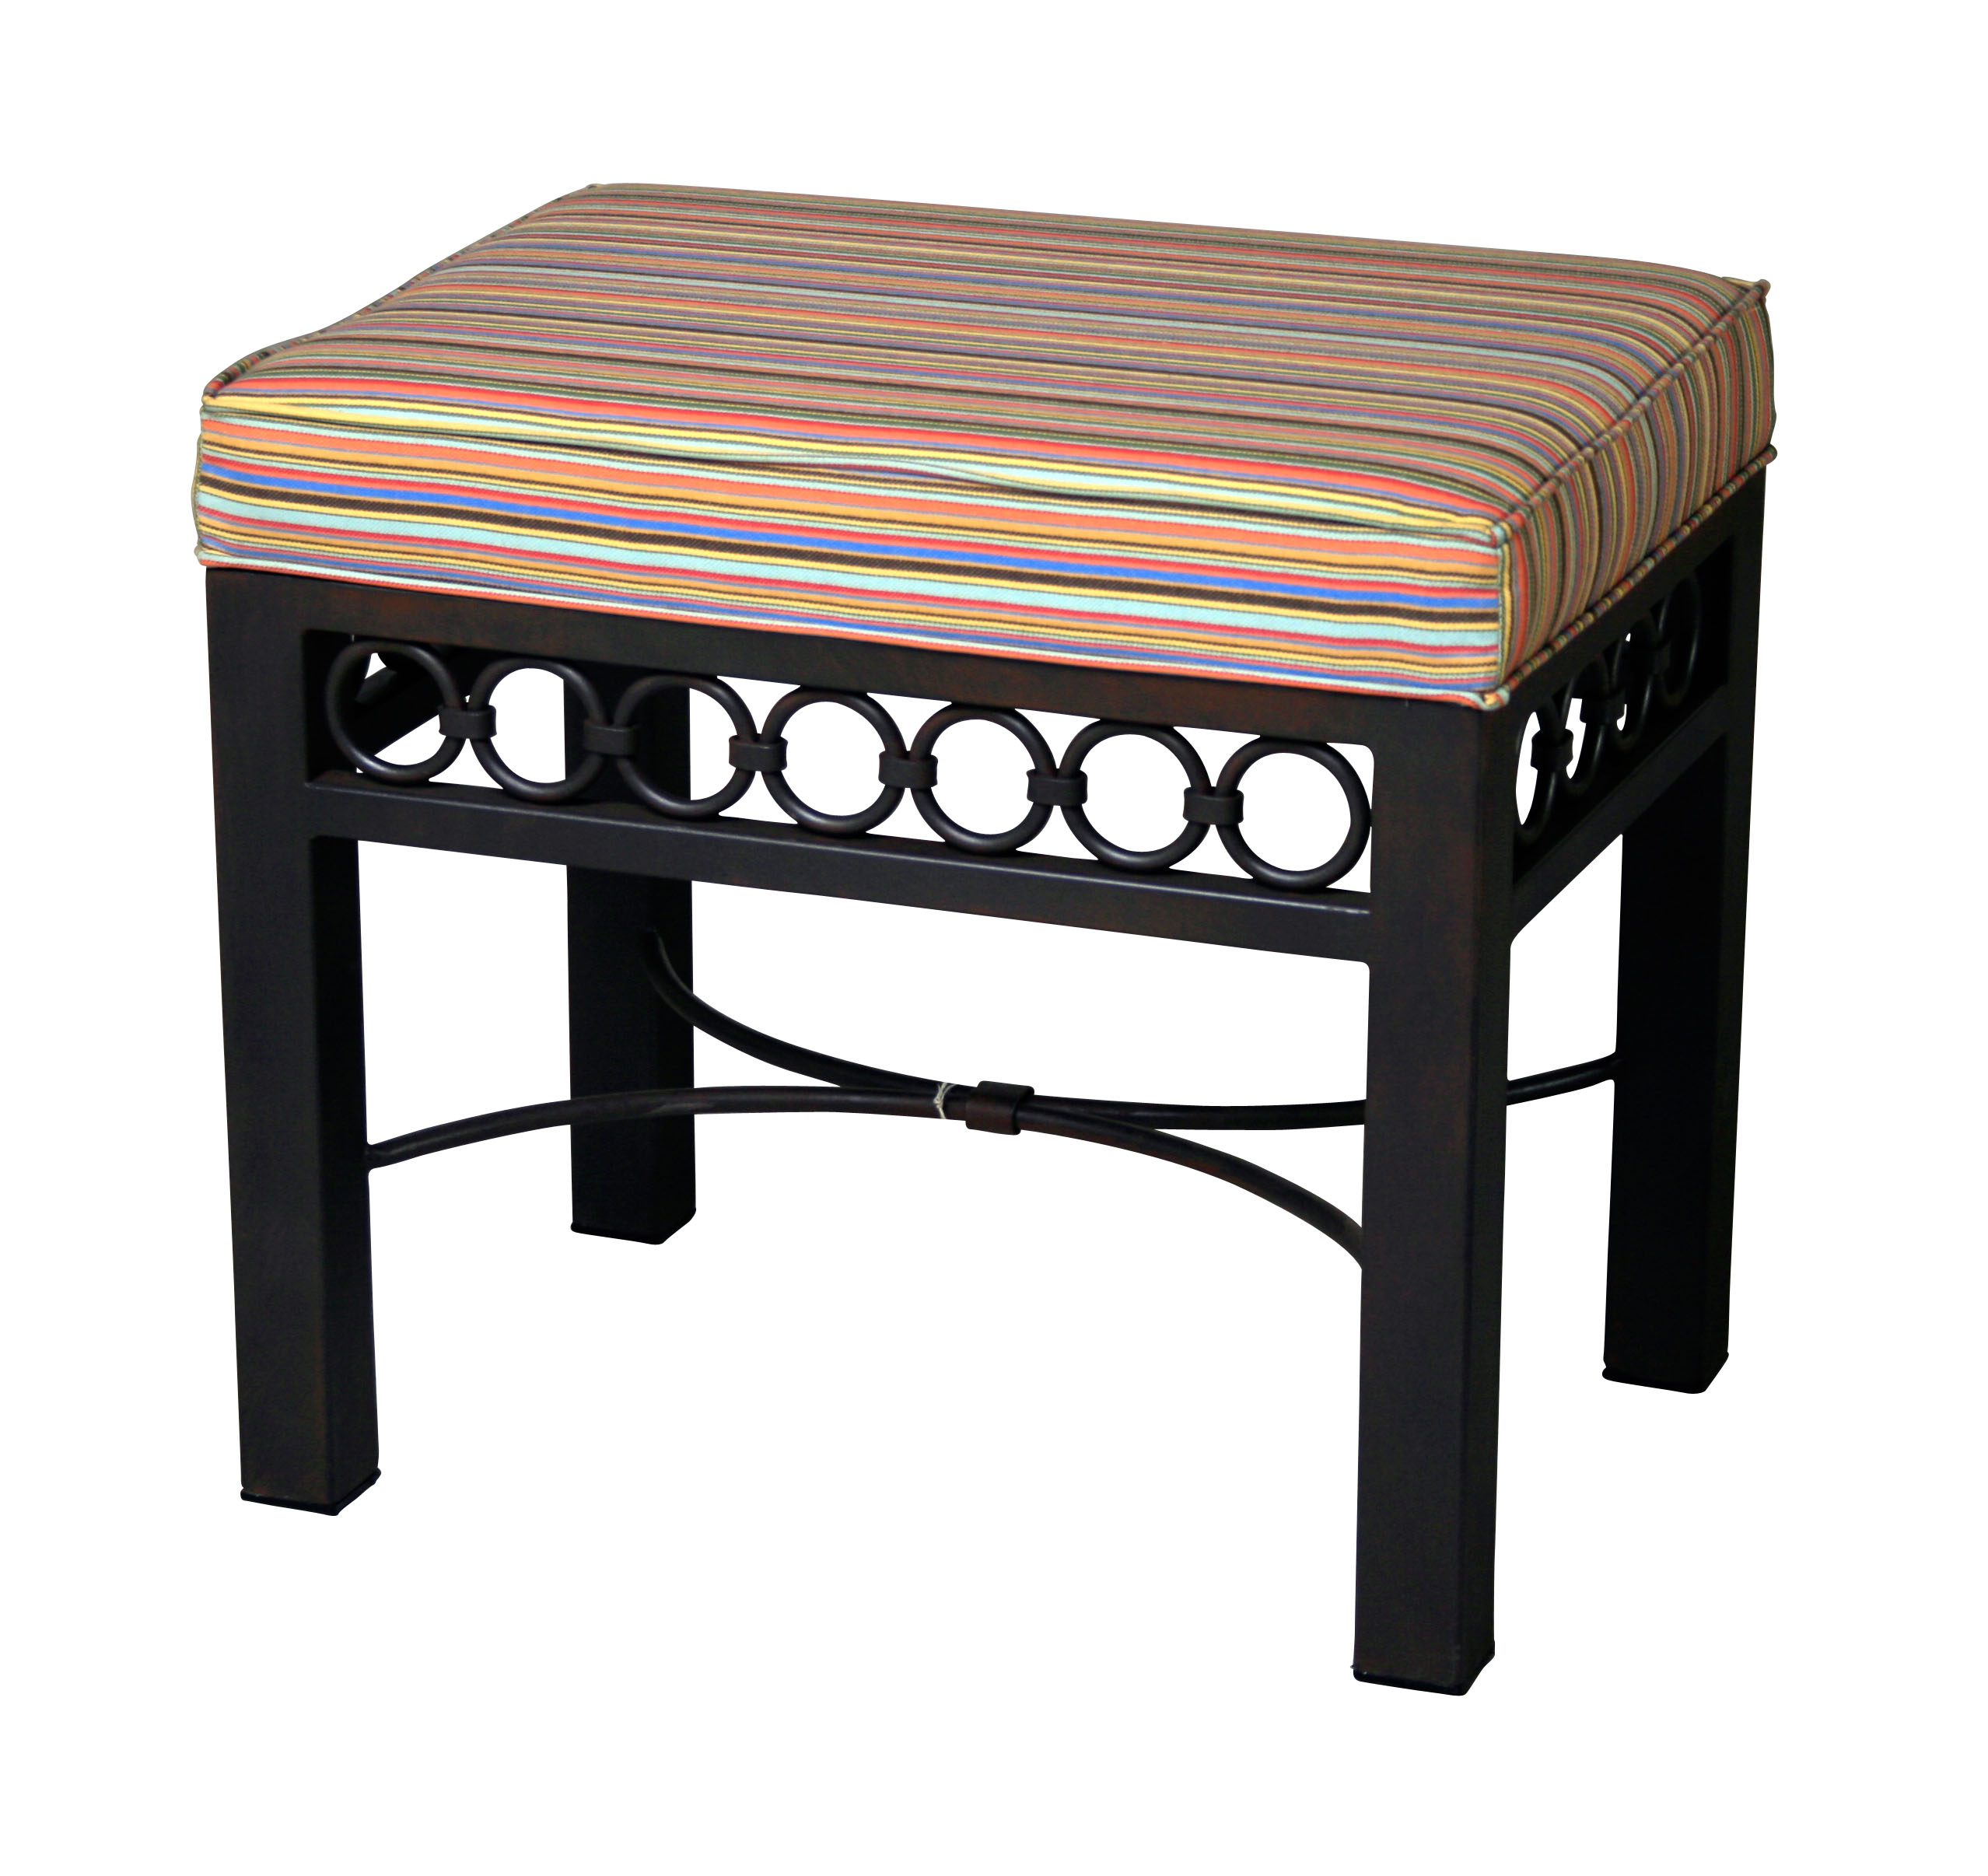 Bench - Small - Iron Upholstered - 15528